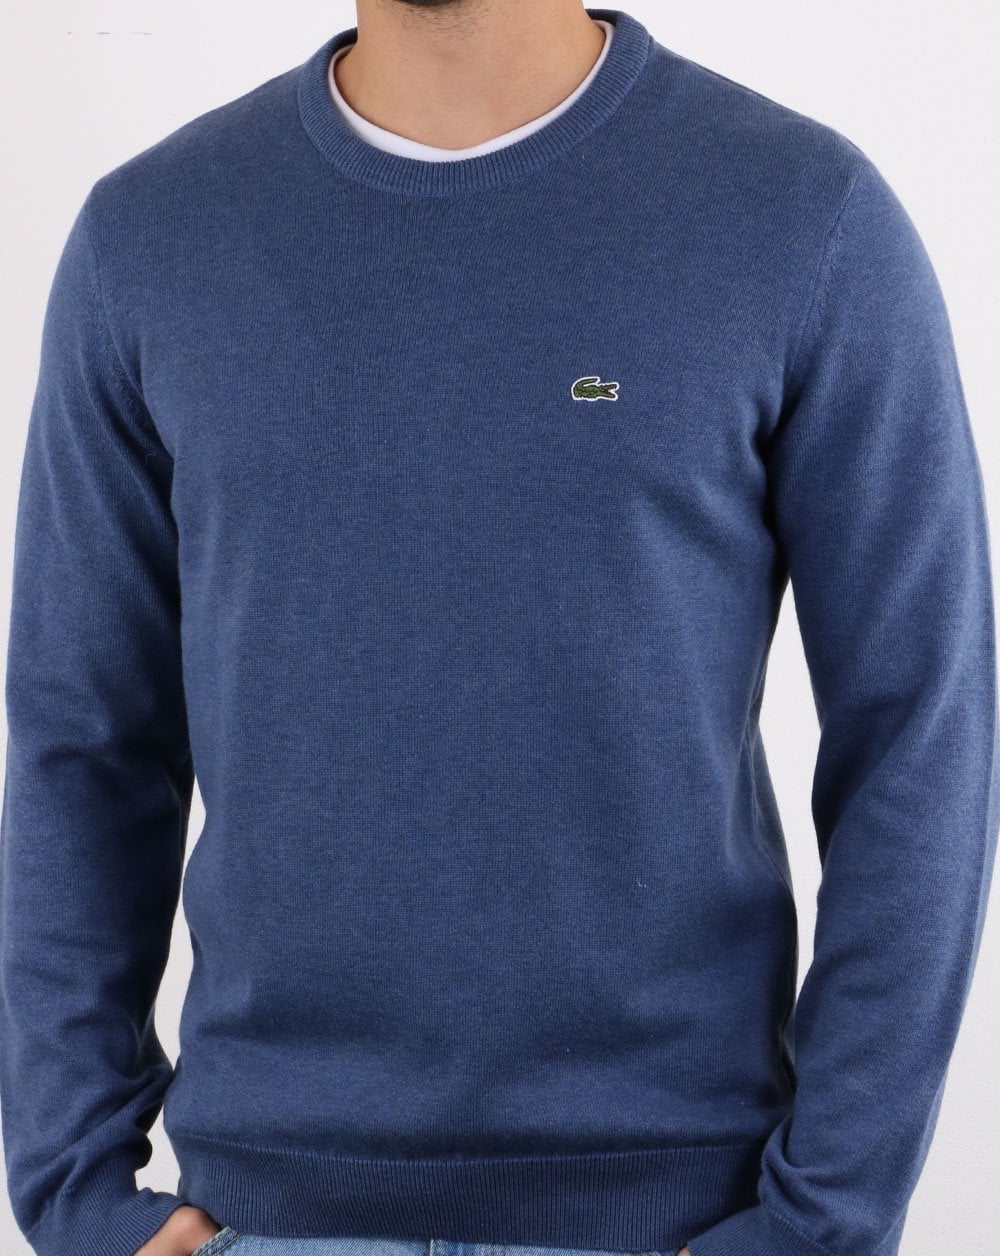 2019 original sleek sale usa online Lacoste Crew Neck Jumper Blue